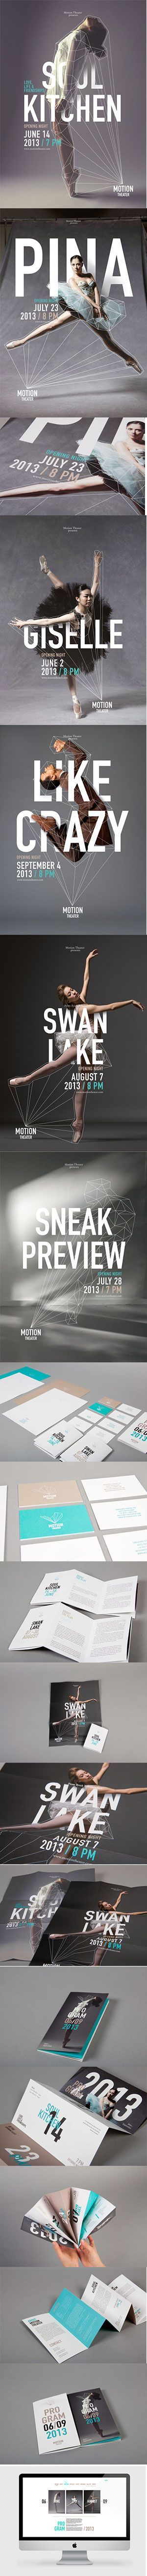 Motion Theater promotion design: flyer, Poster, Homepage | typography / graphic design: Caroline Grohs @ behance |: